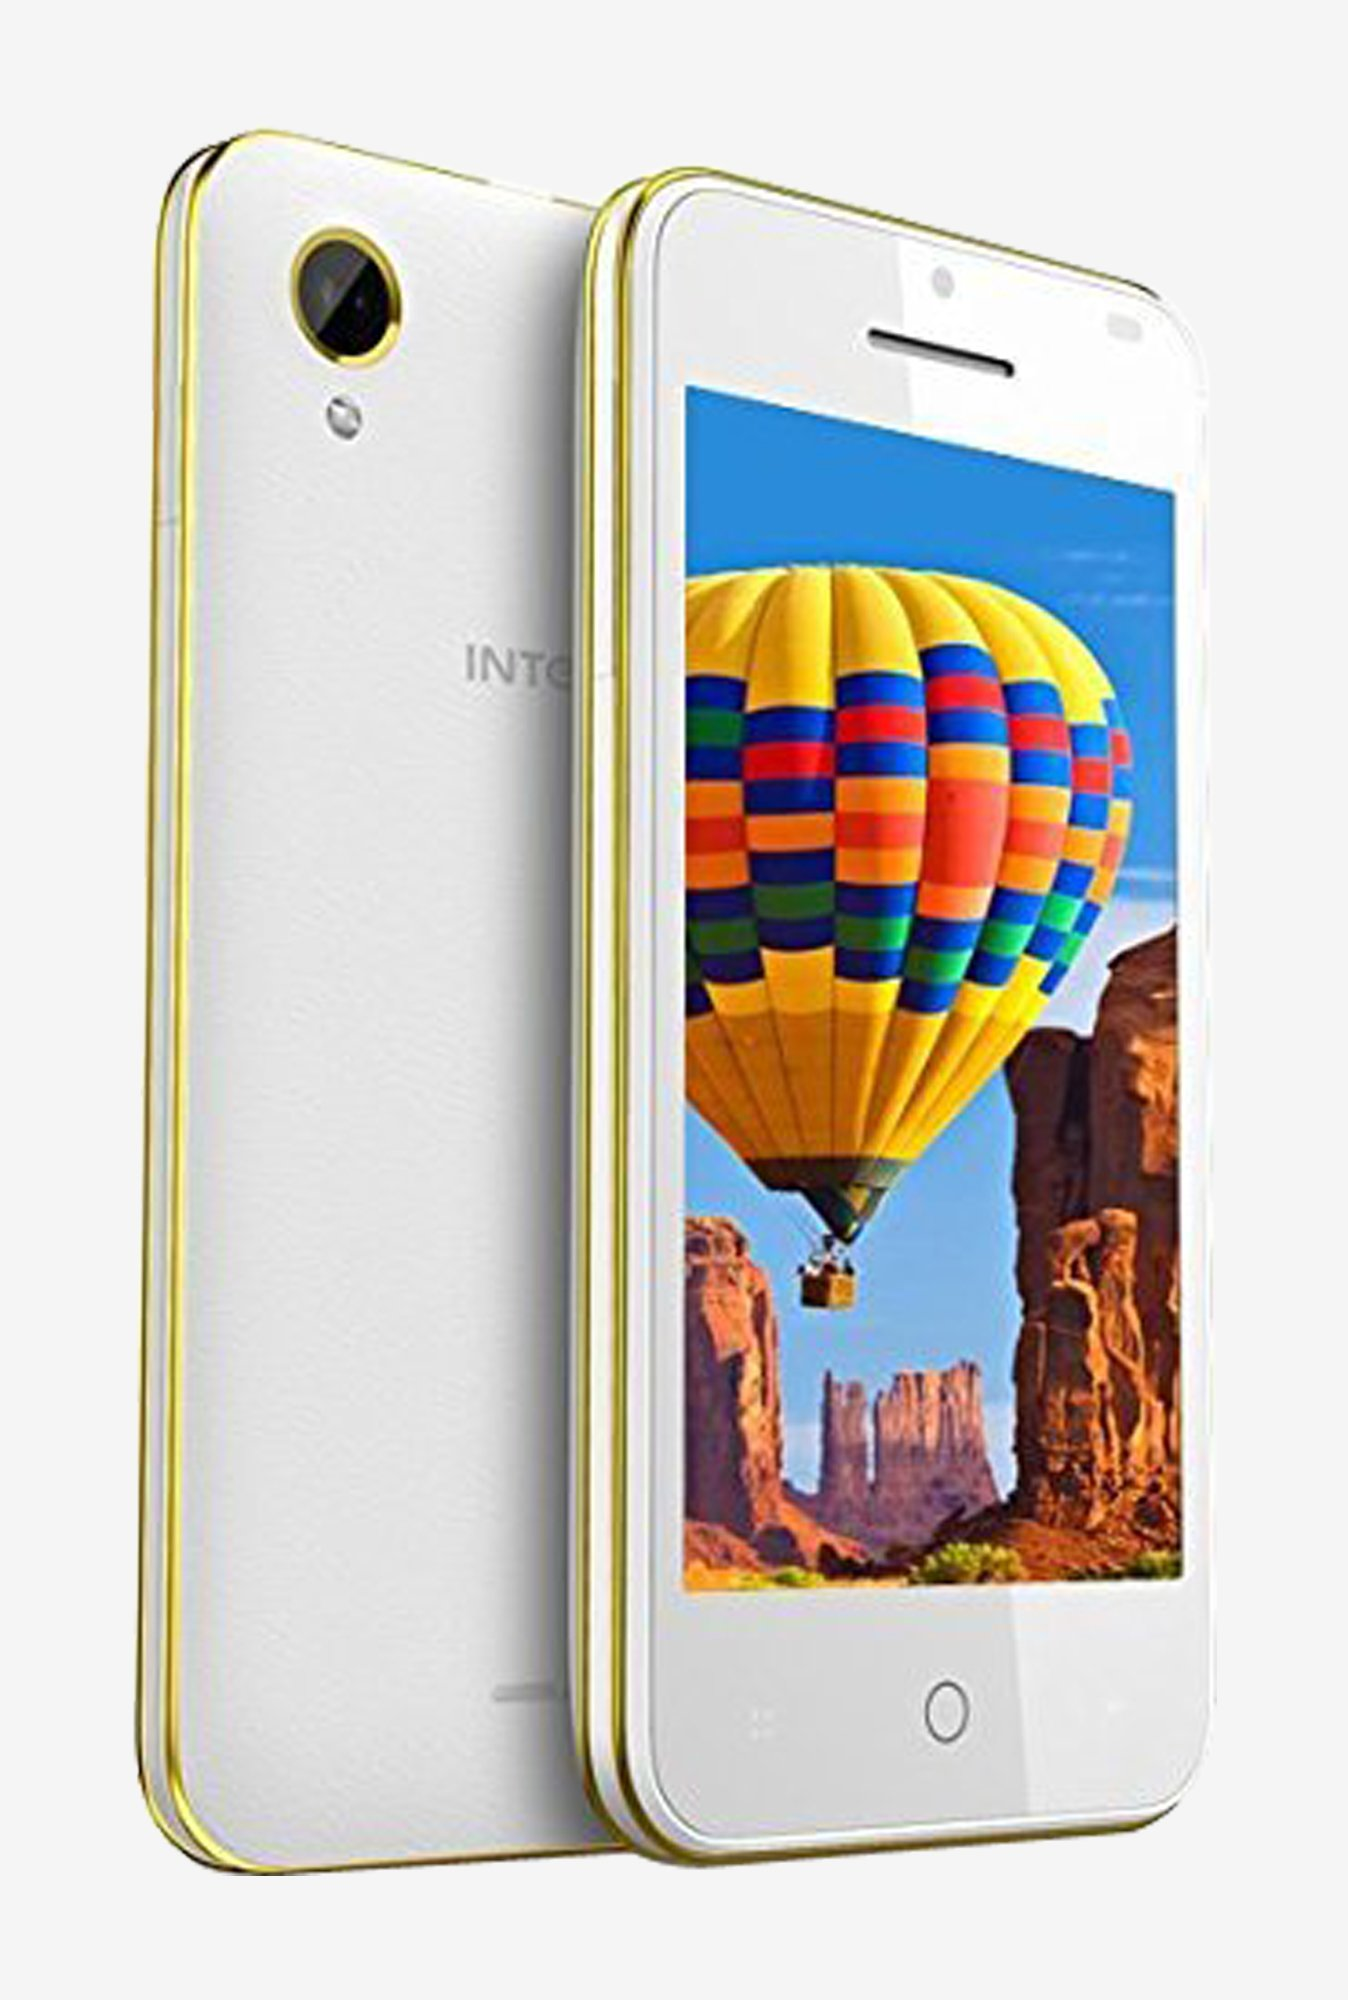 Intex Aqua Y2 Power HD Palyback Autocall Record (White)